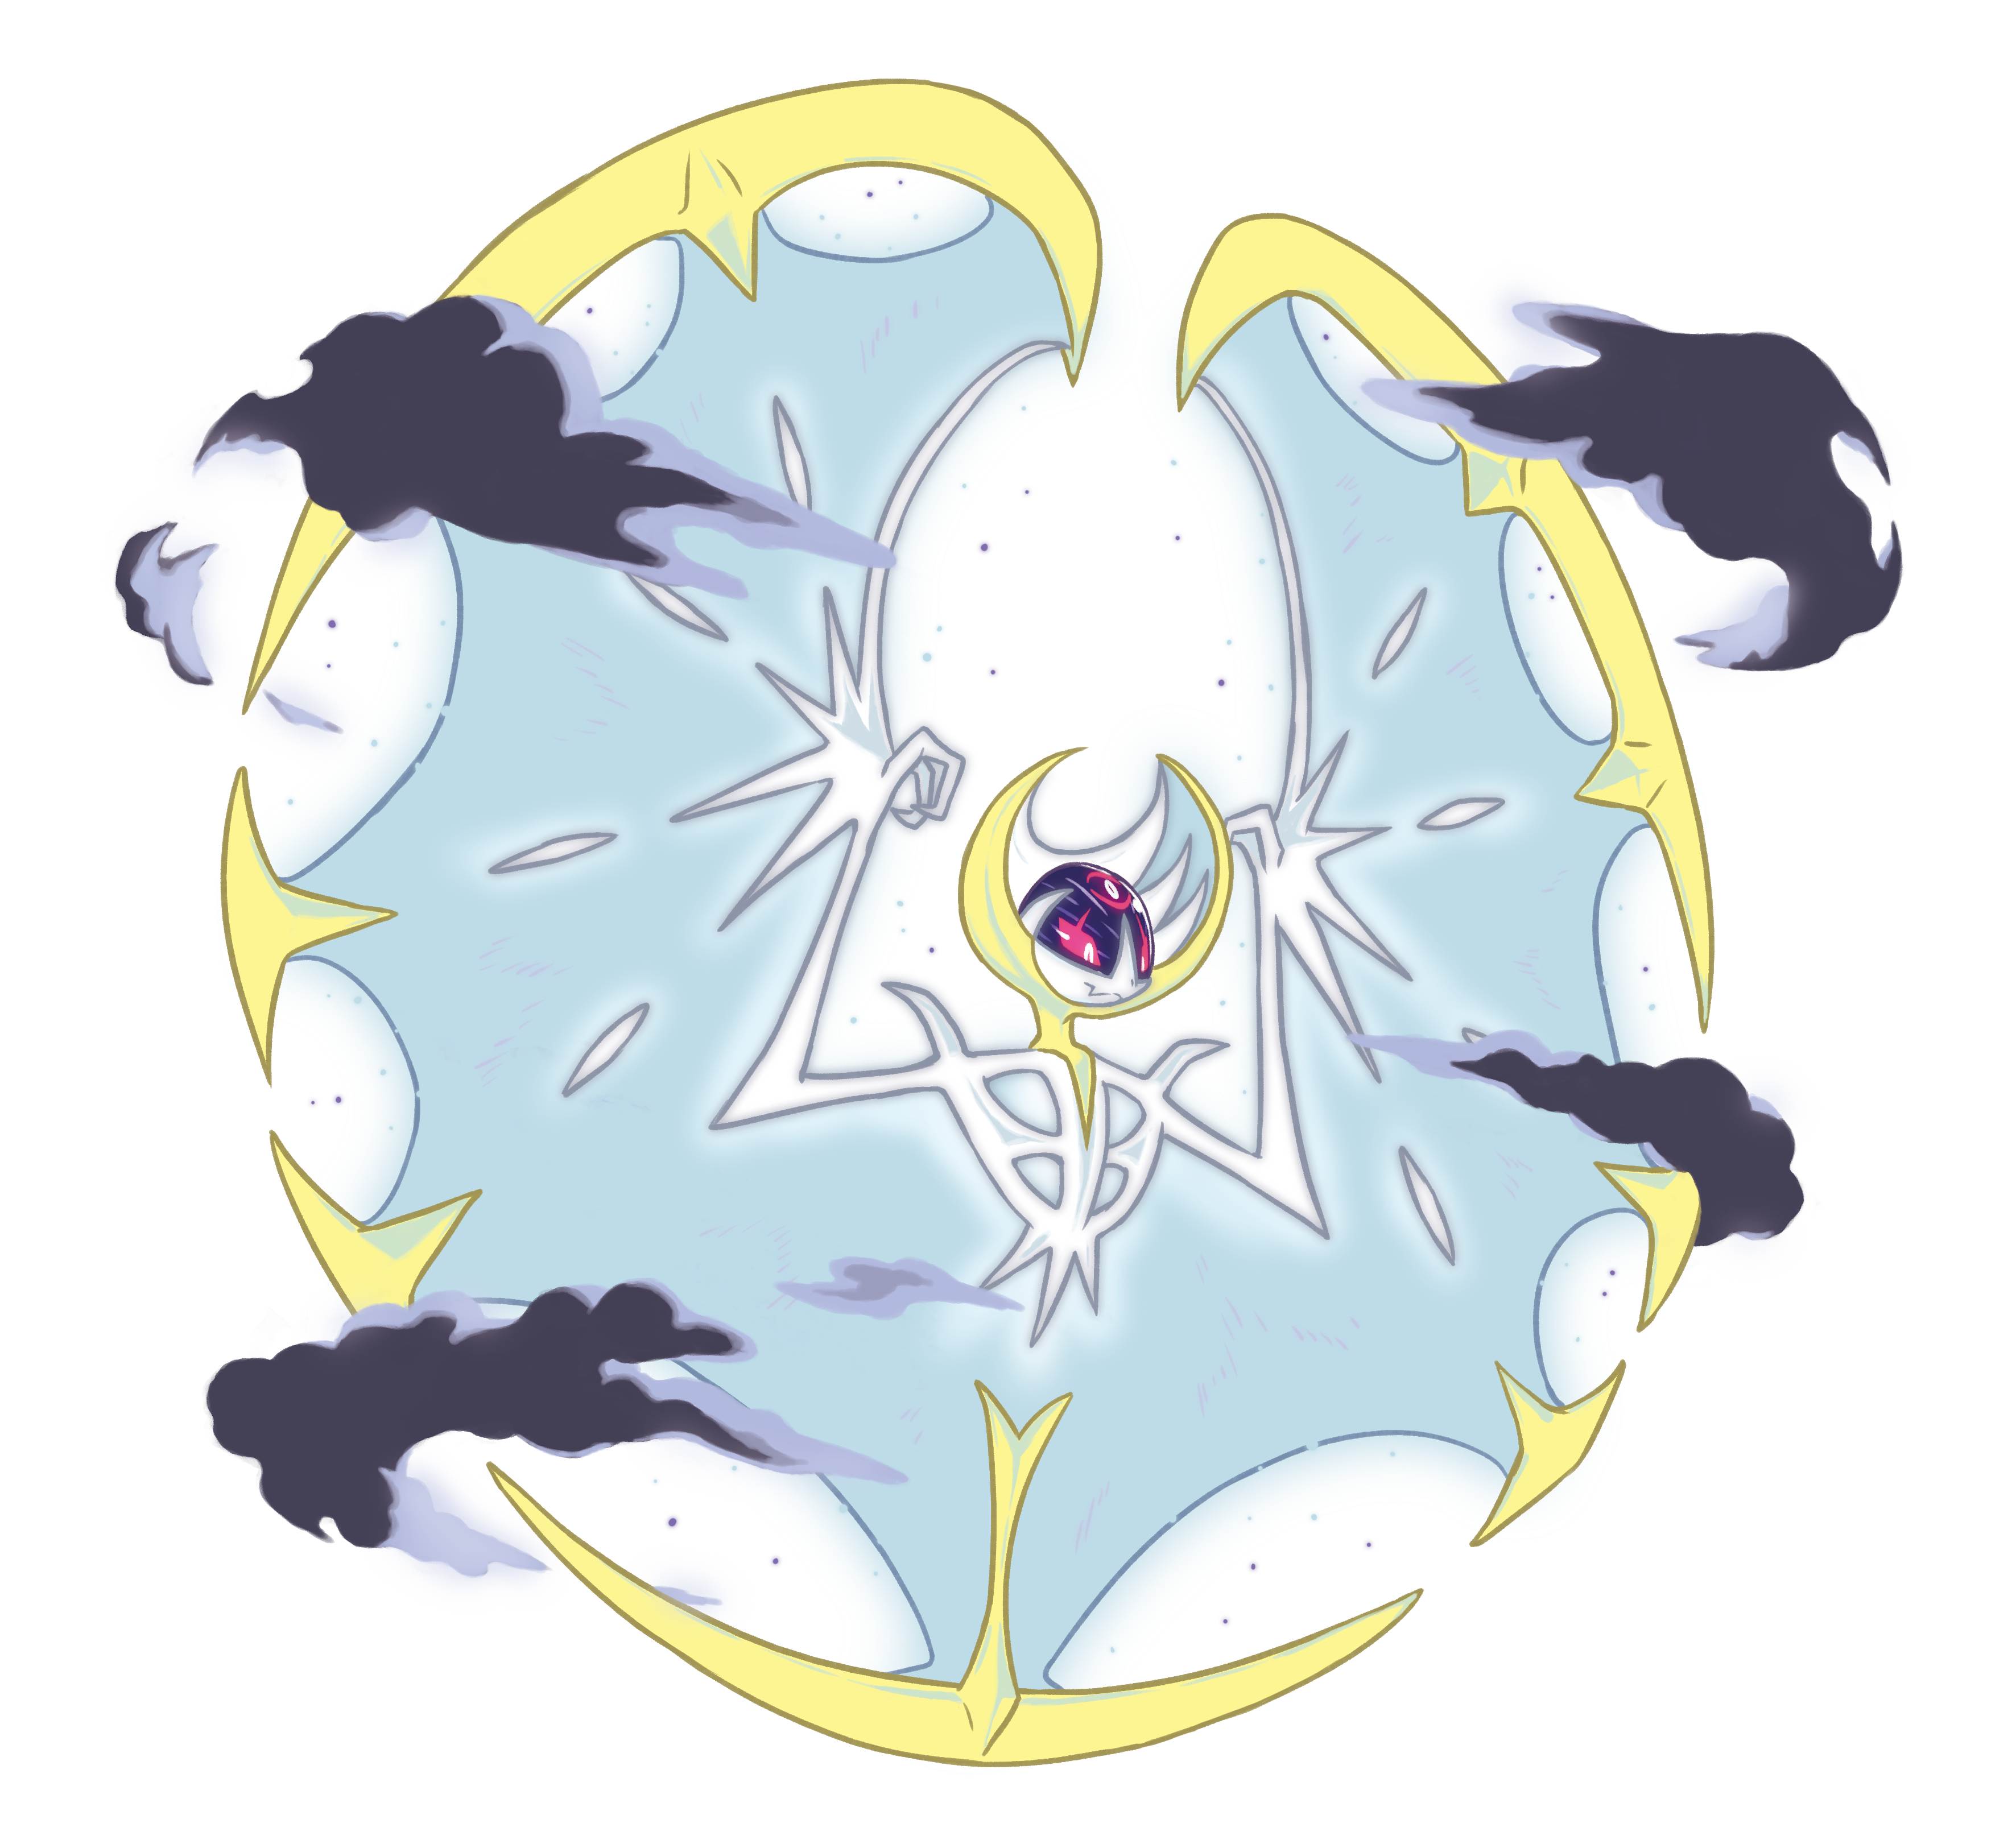 Sun and moon watch face clipart svg library Lunala Full Moon Phase | Pokémon Sun & Moon | Pinterest | Full moon ... svg library